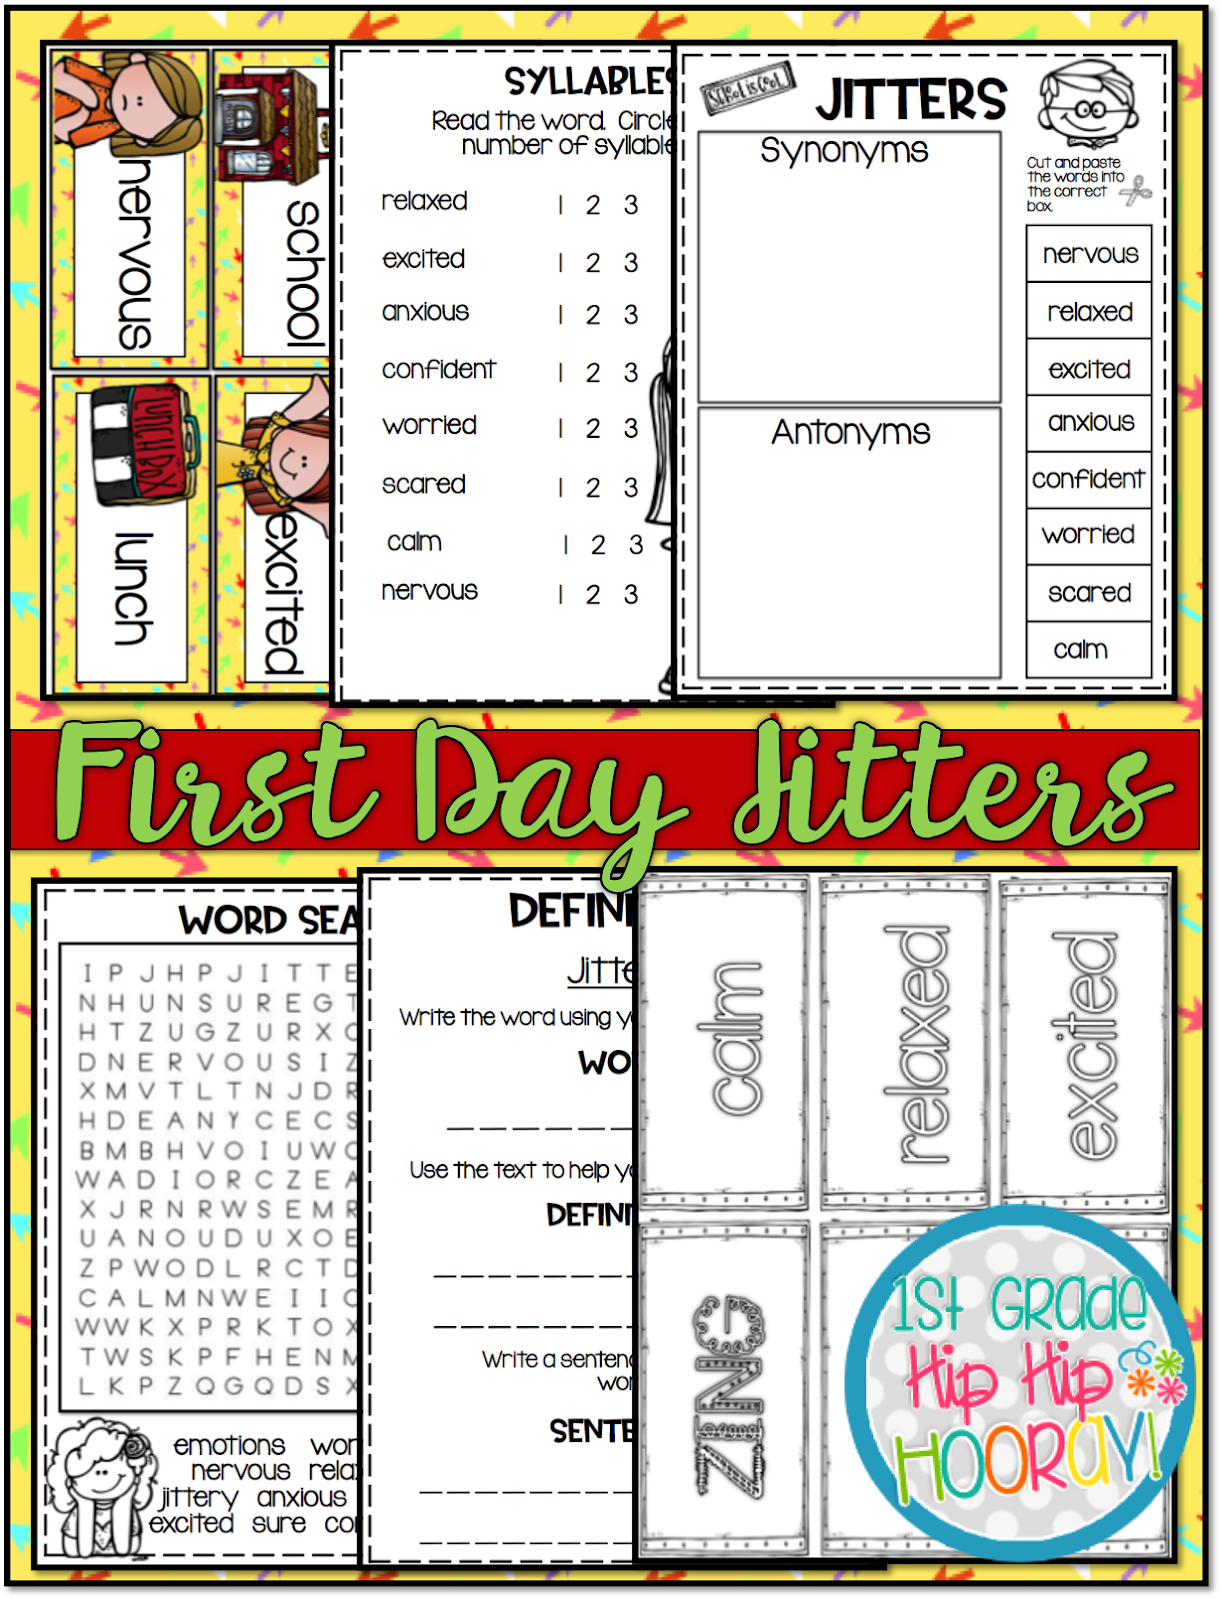 1st Grade Hip Hip Hooray First Day Jitters Paper